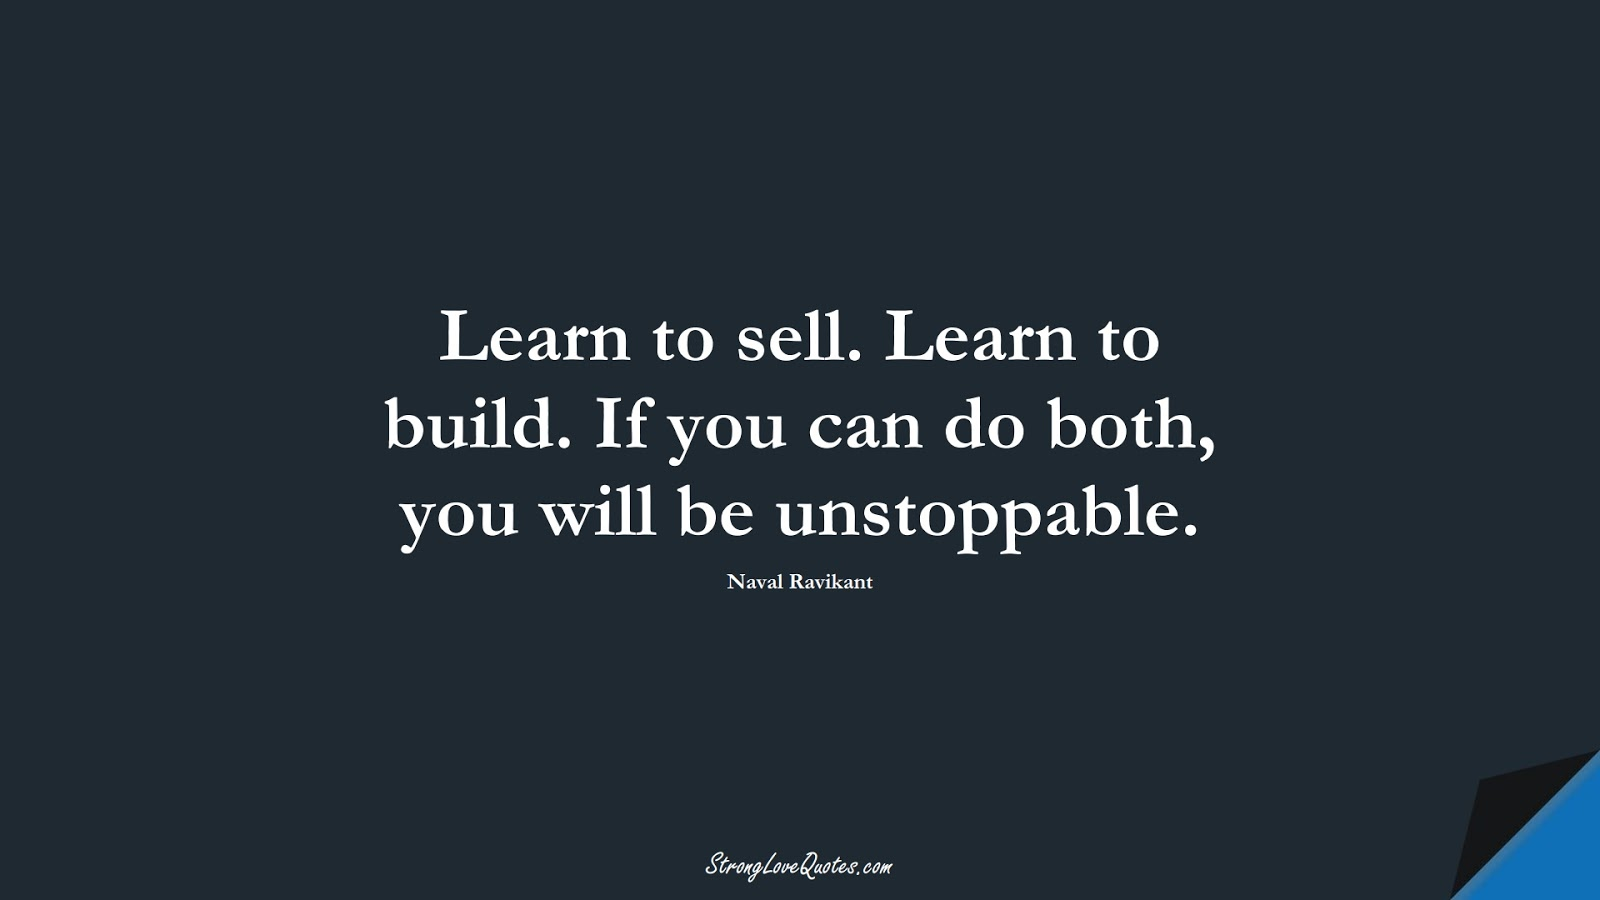 Learn to sell. Learn to build. If you can do both, you will be unstoppable. (Naval Ravikant);  #LearningQuotes